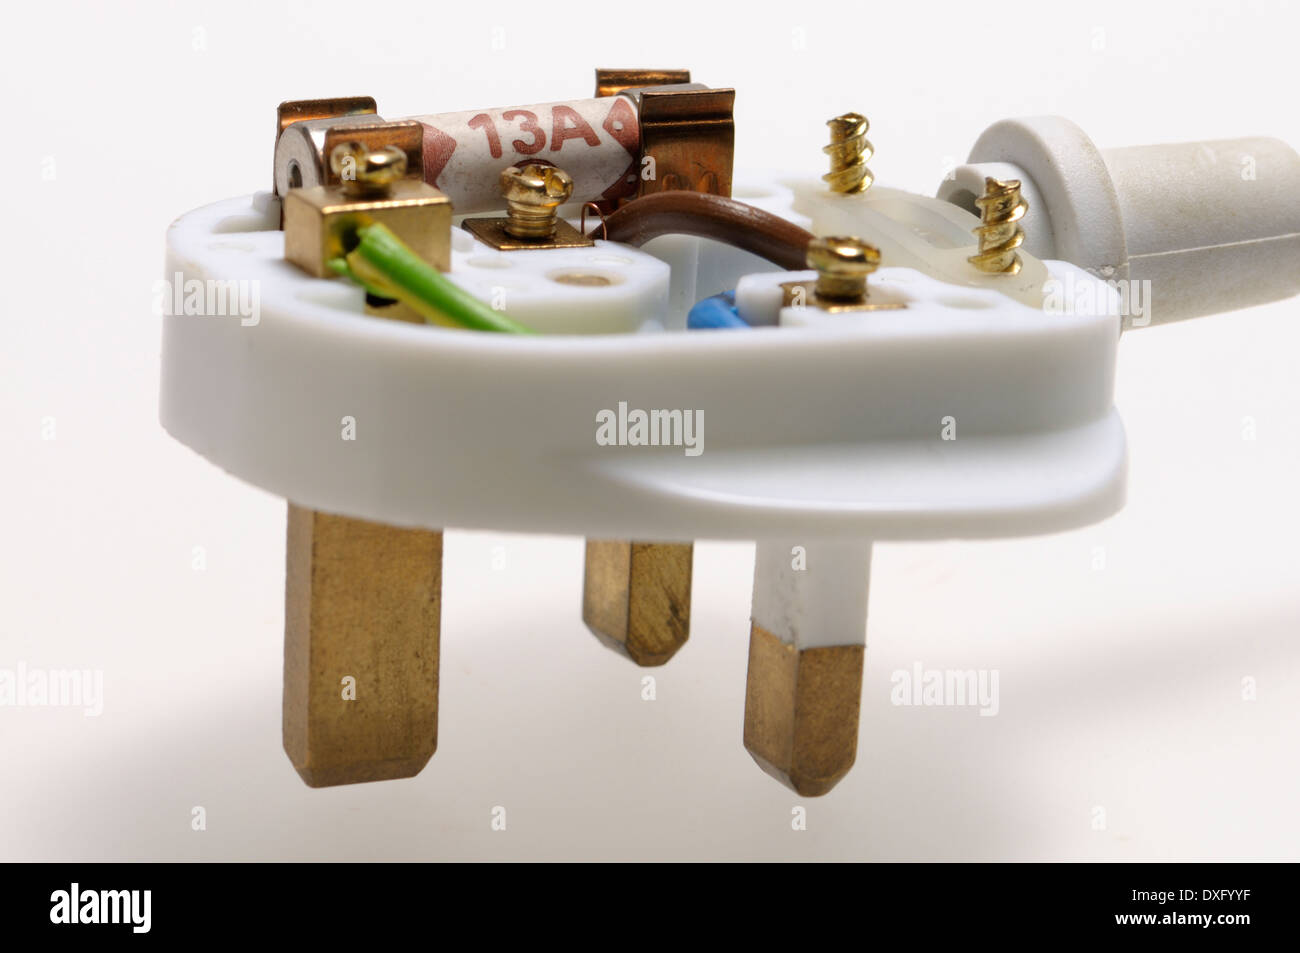 3 Pin Plug Stock Photos Images Alamy Wiring A Kitchen British Electric With Top Removed To Show Fuse And